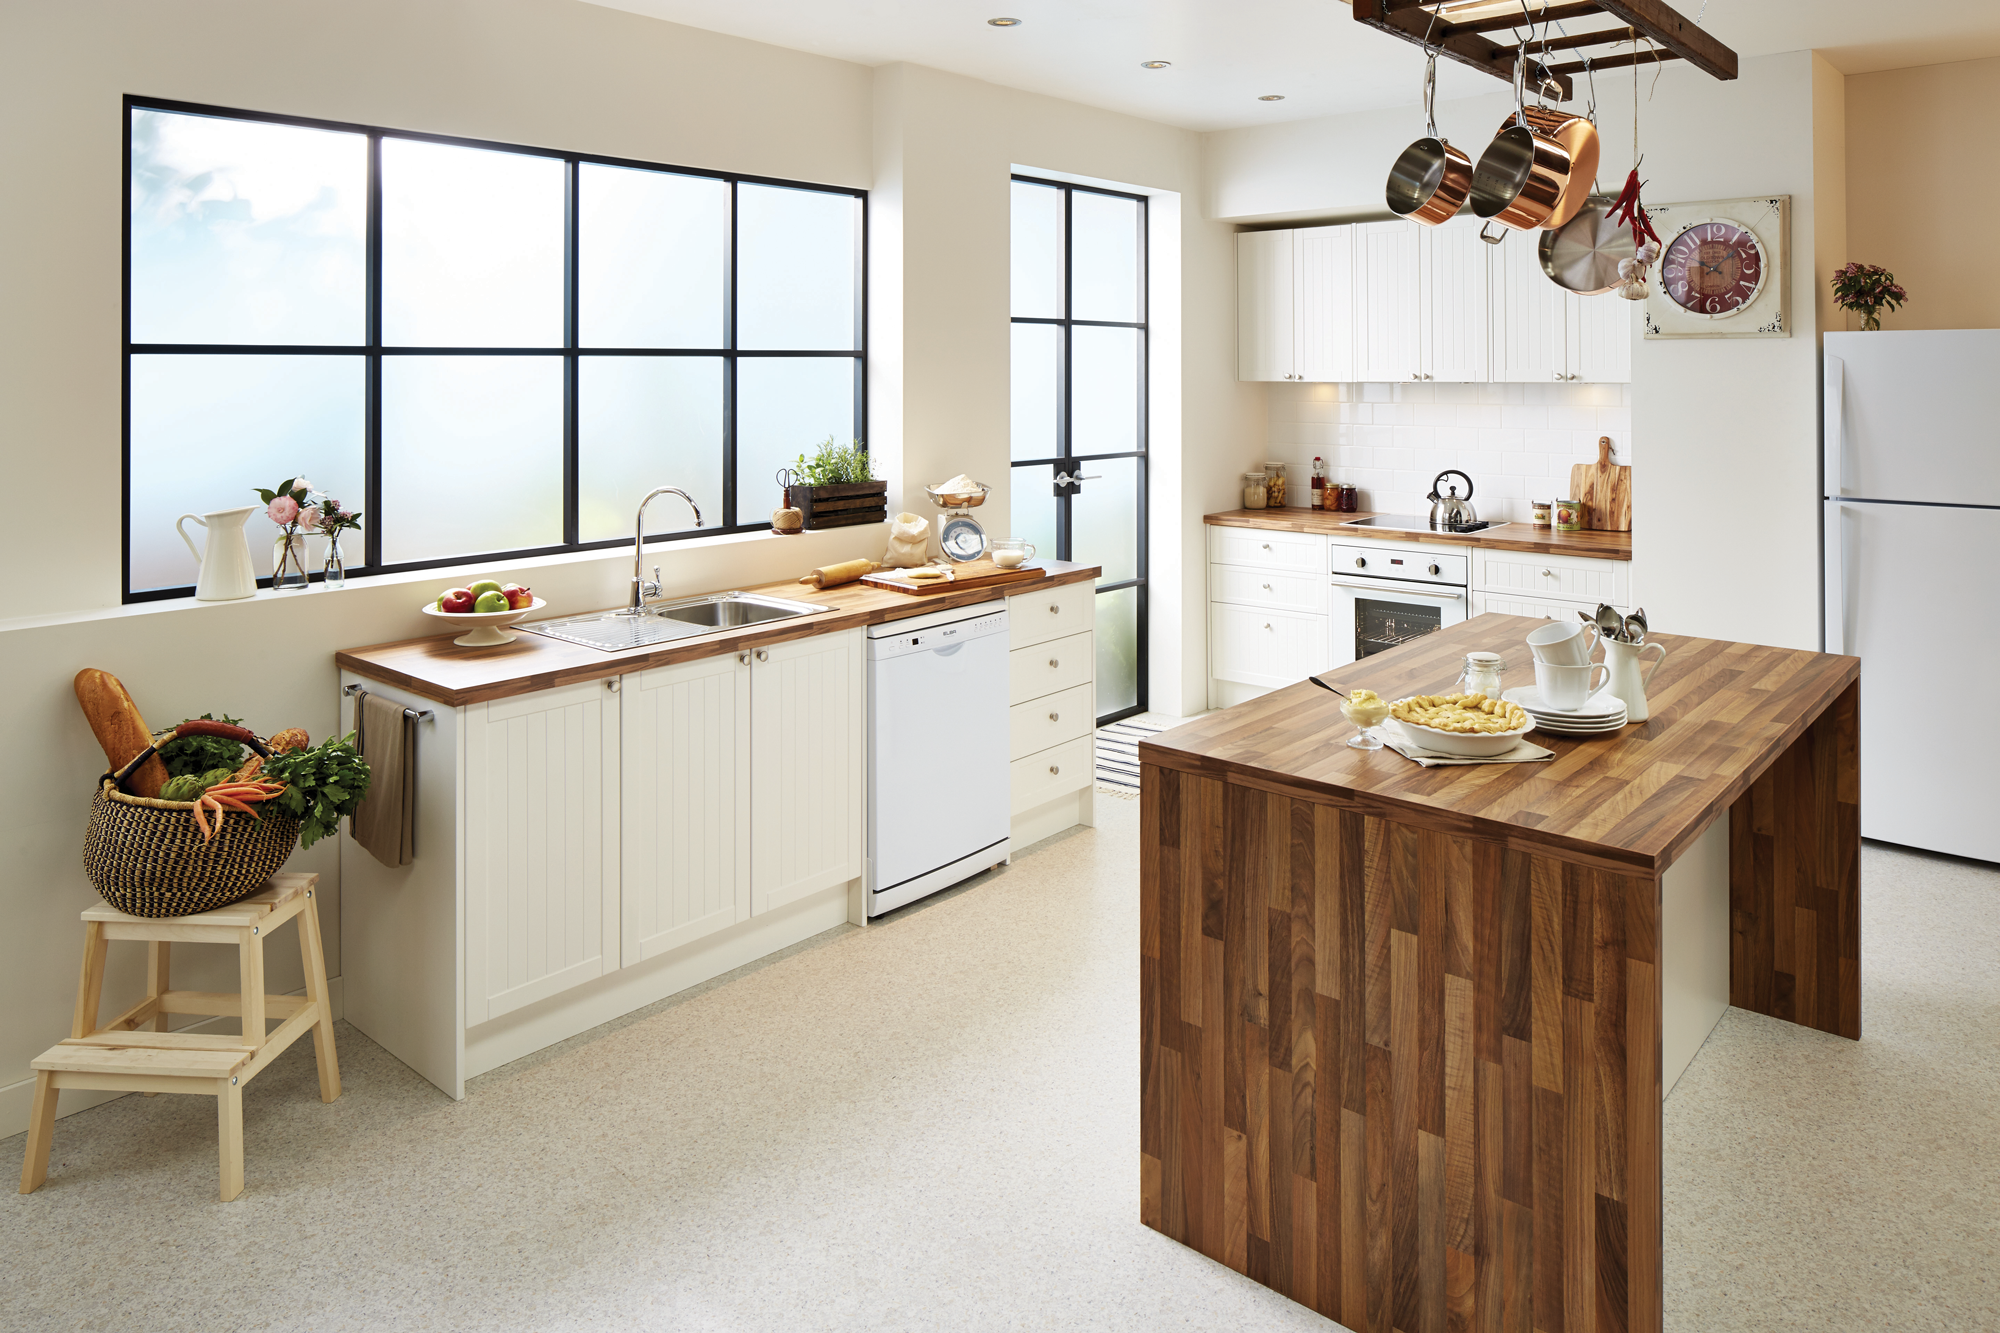 Home Furniture Bunnings Kitchens Designs kitchen inspiration gallery bunnings warehouse gallery